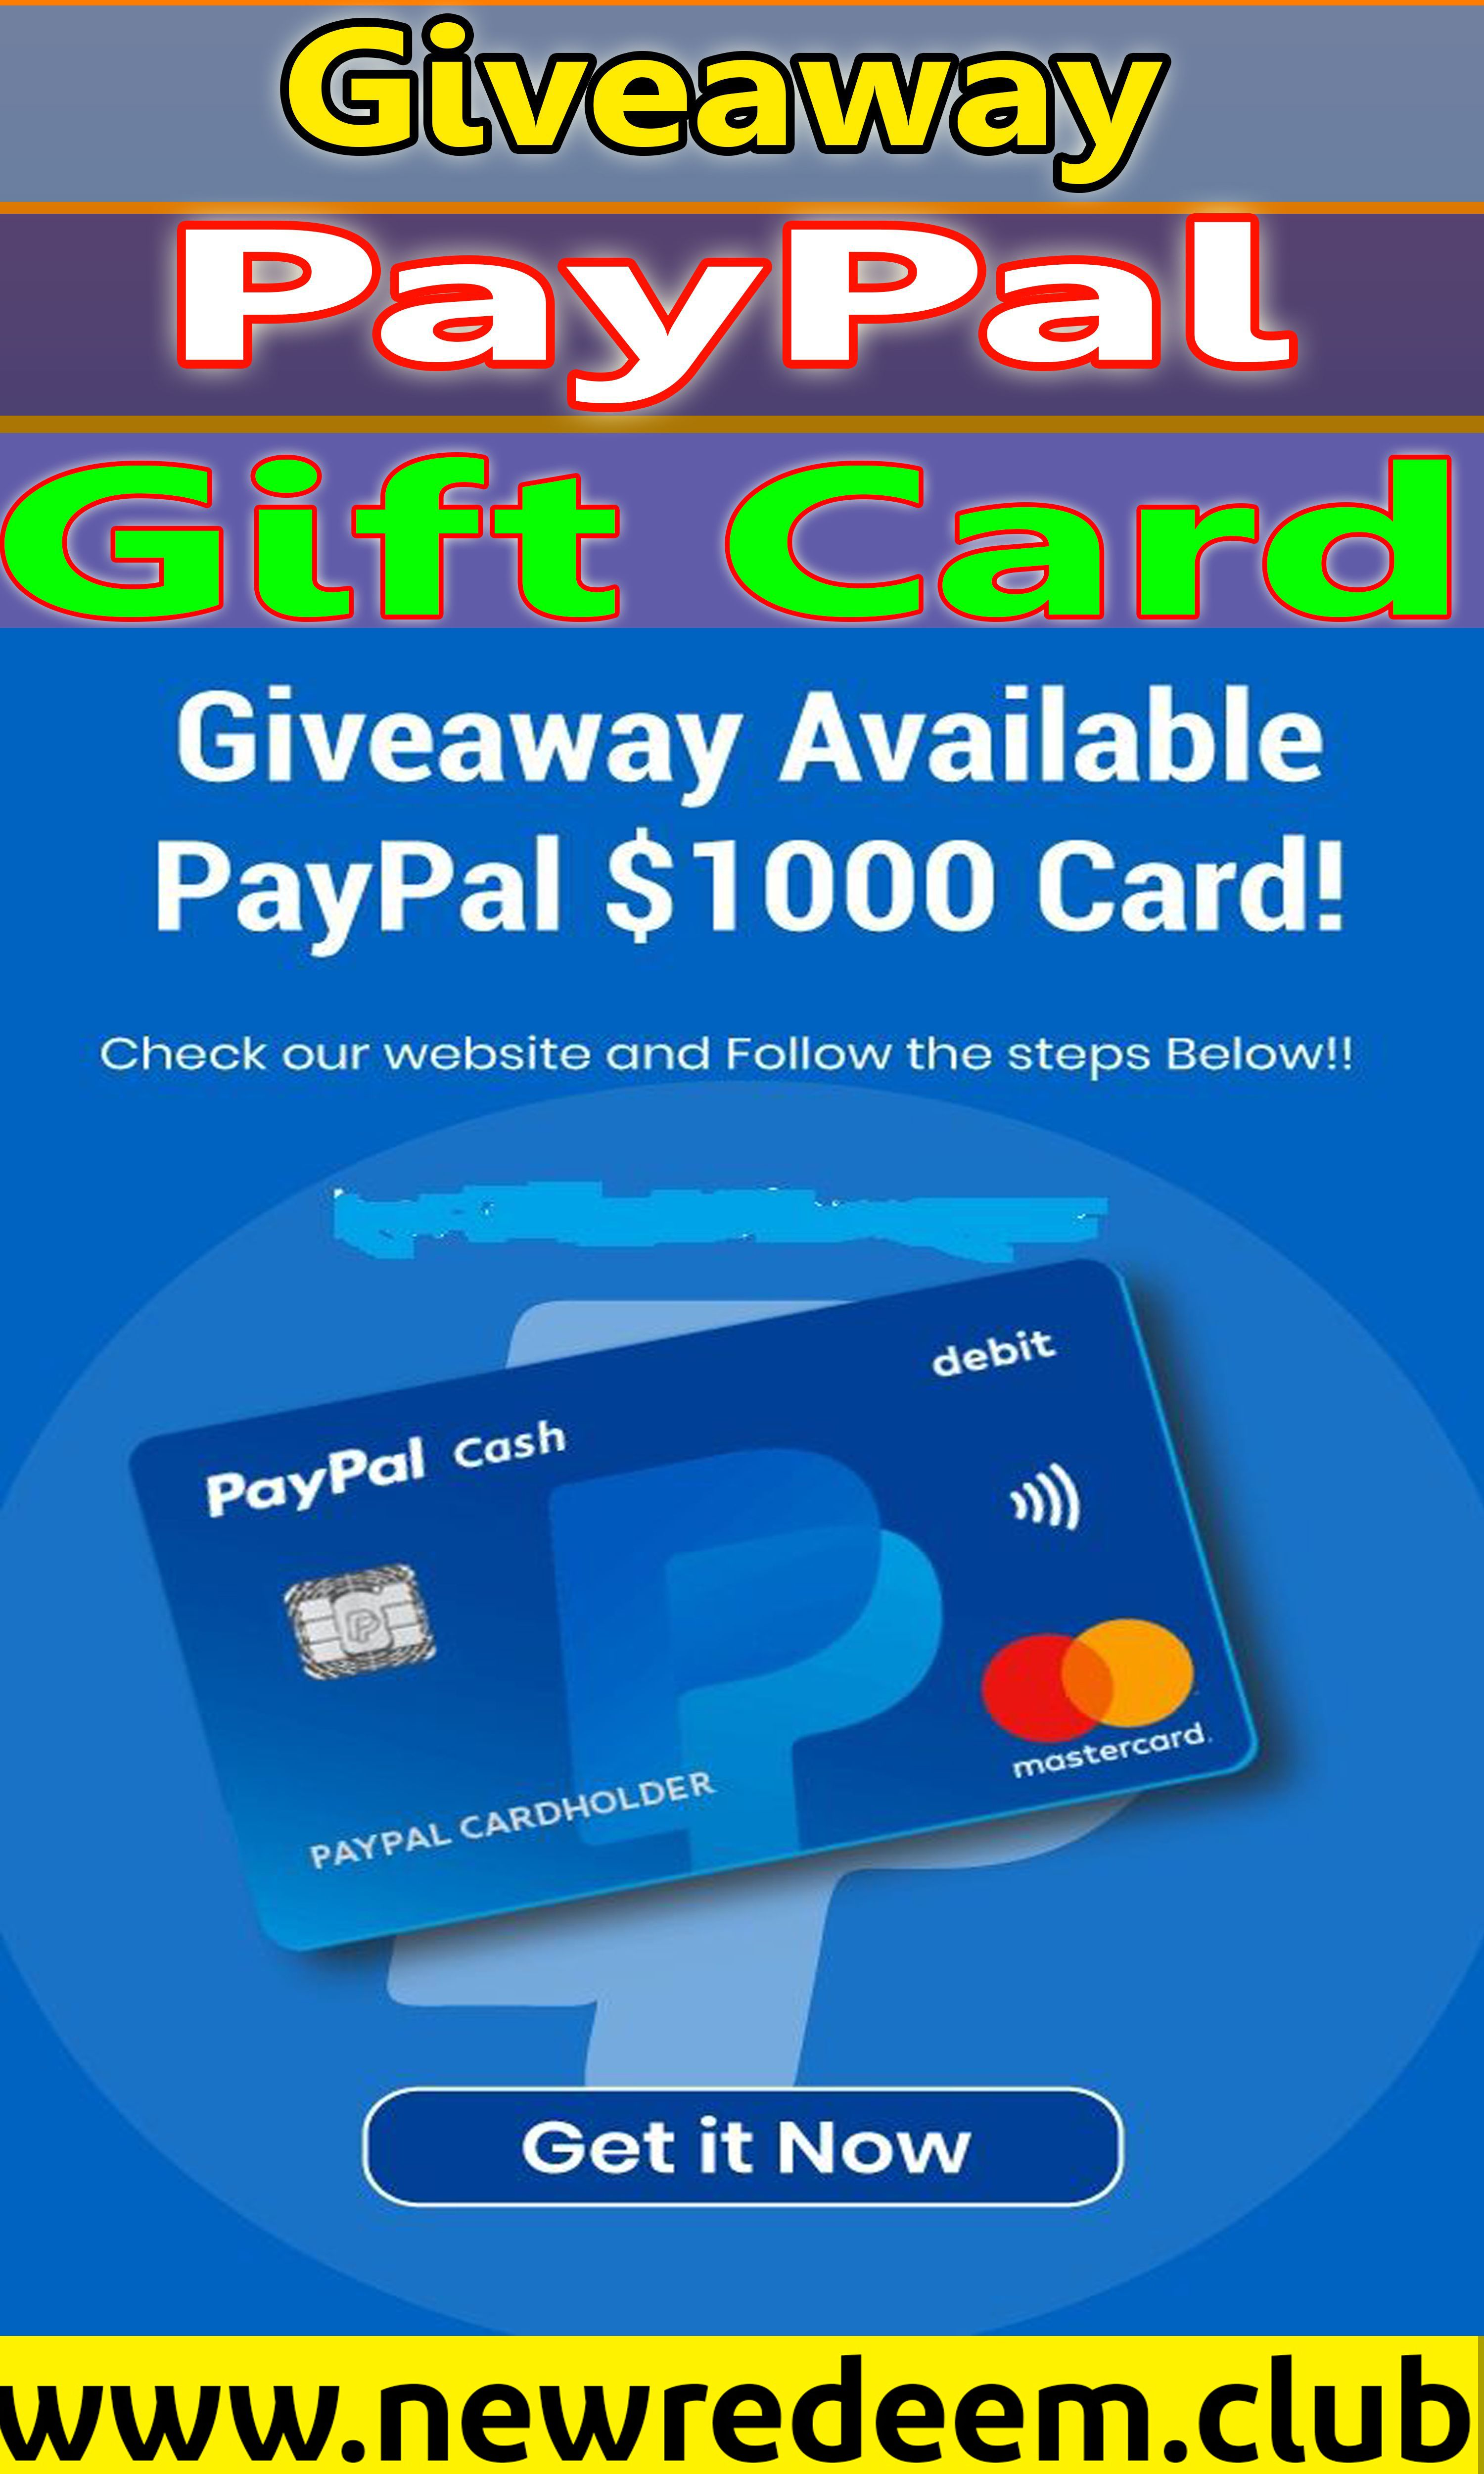 Win a 1000 paypal gift card giveaway in 2020